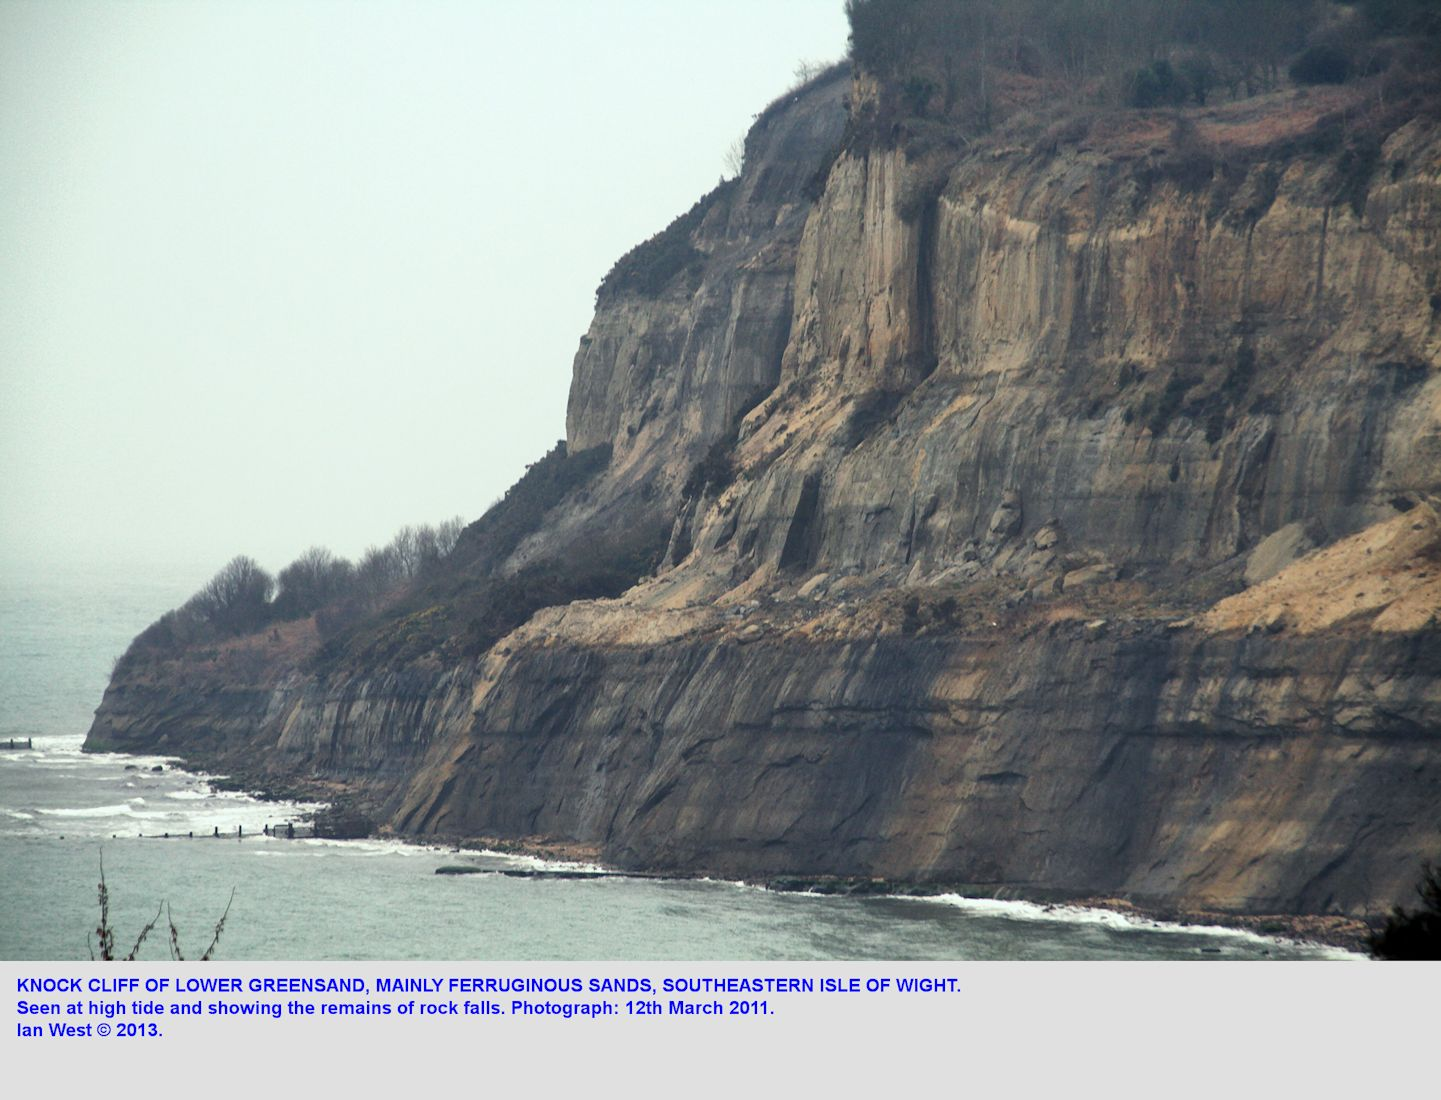 Knock Cliff of Lower Greensand, seen at high tide on the 12th March, 2011, southeastern Isle of Wight, imw photograph